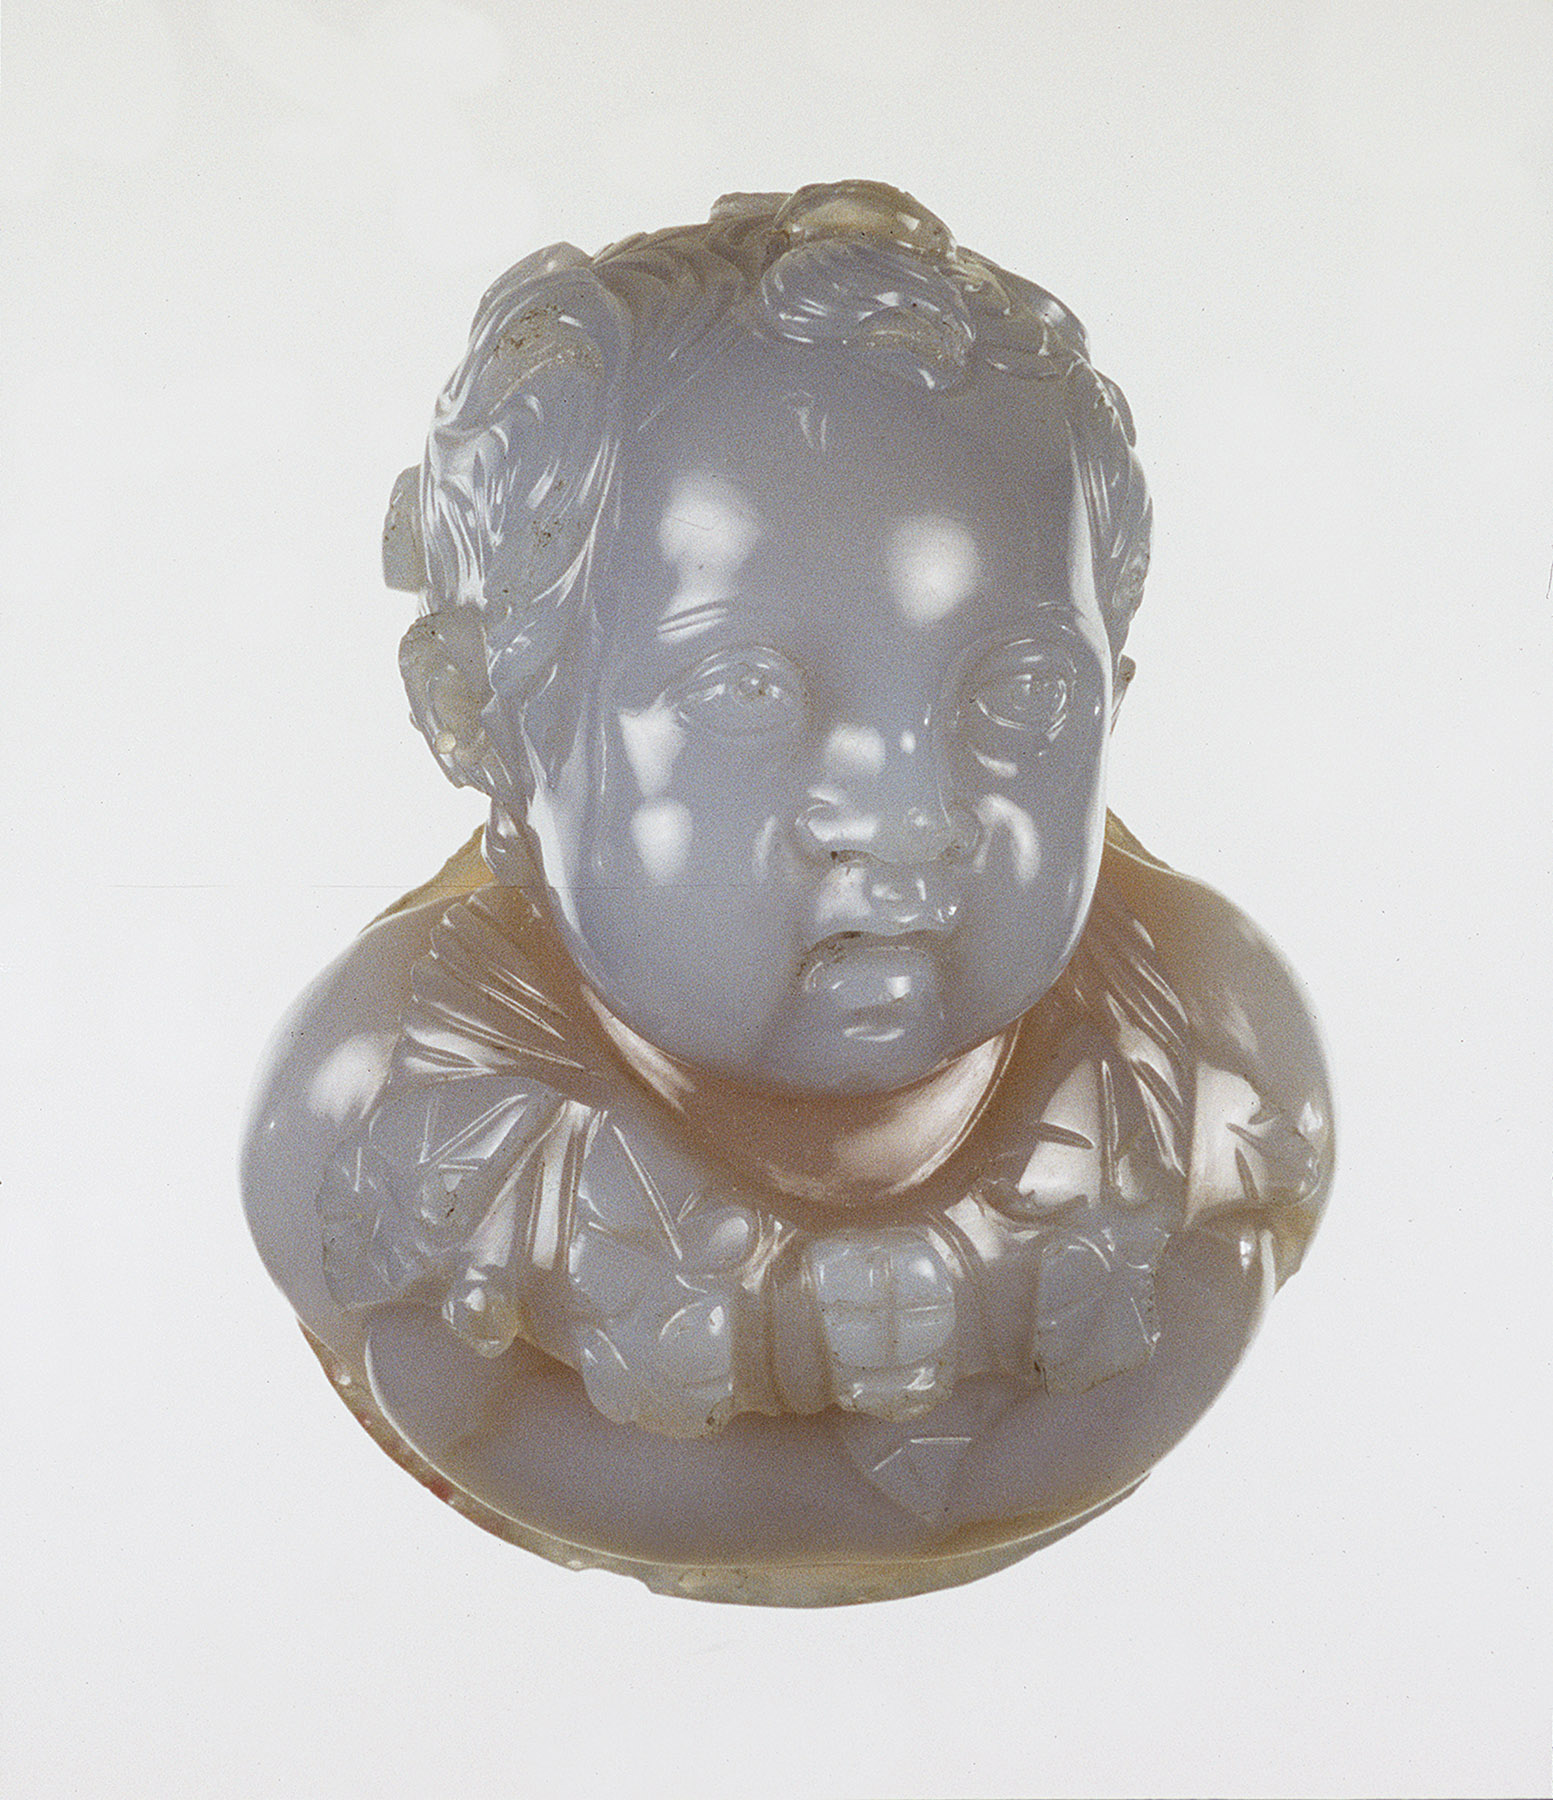 BZ.1937.20, Bust of a Young Boy (Annius Verus?)